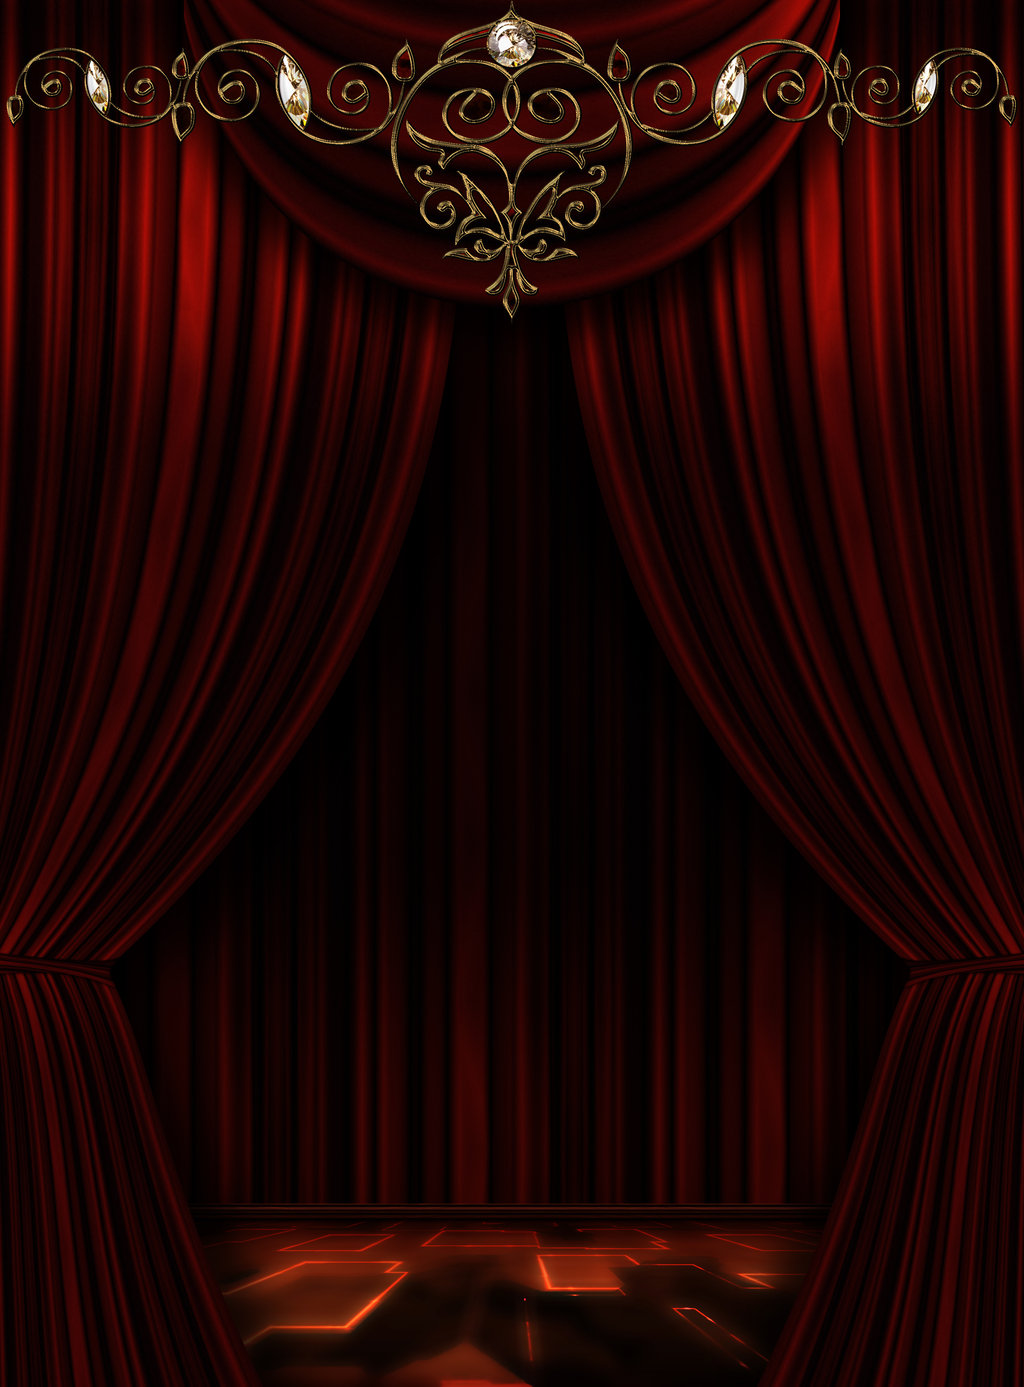 theatre wallpaper wallpapersafari - photo #8